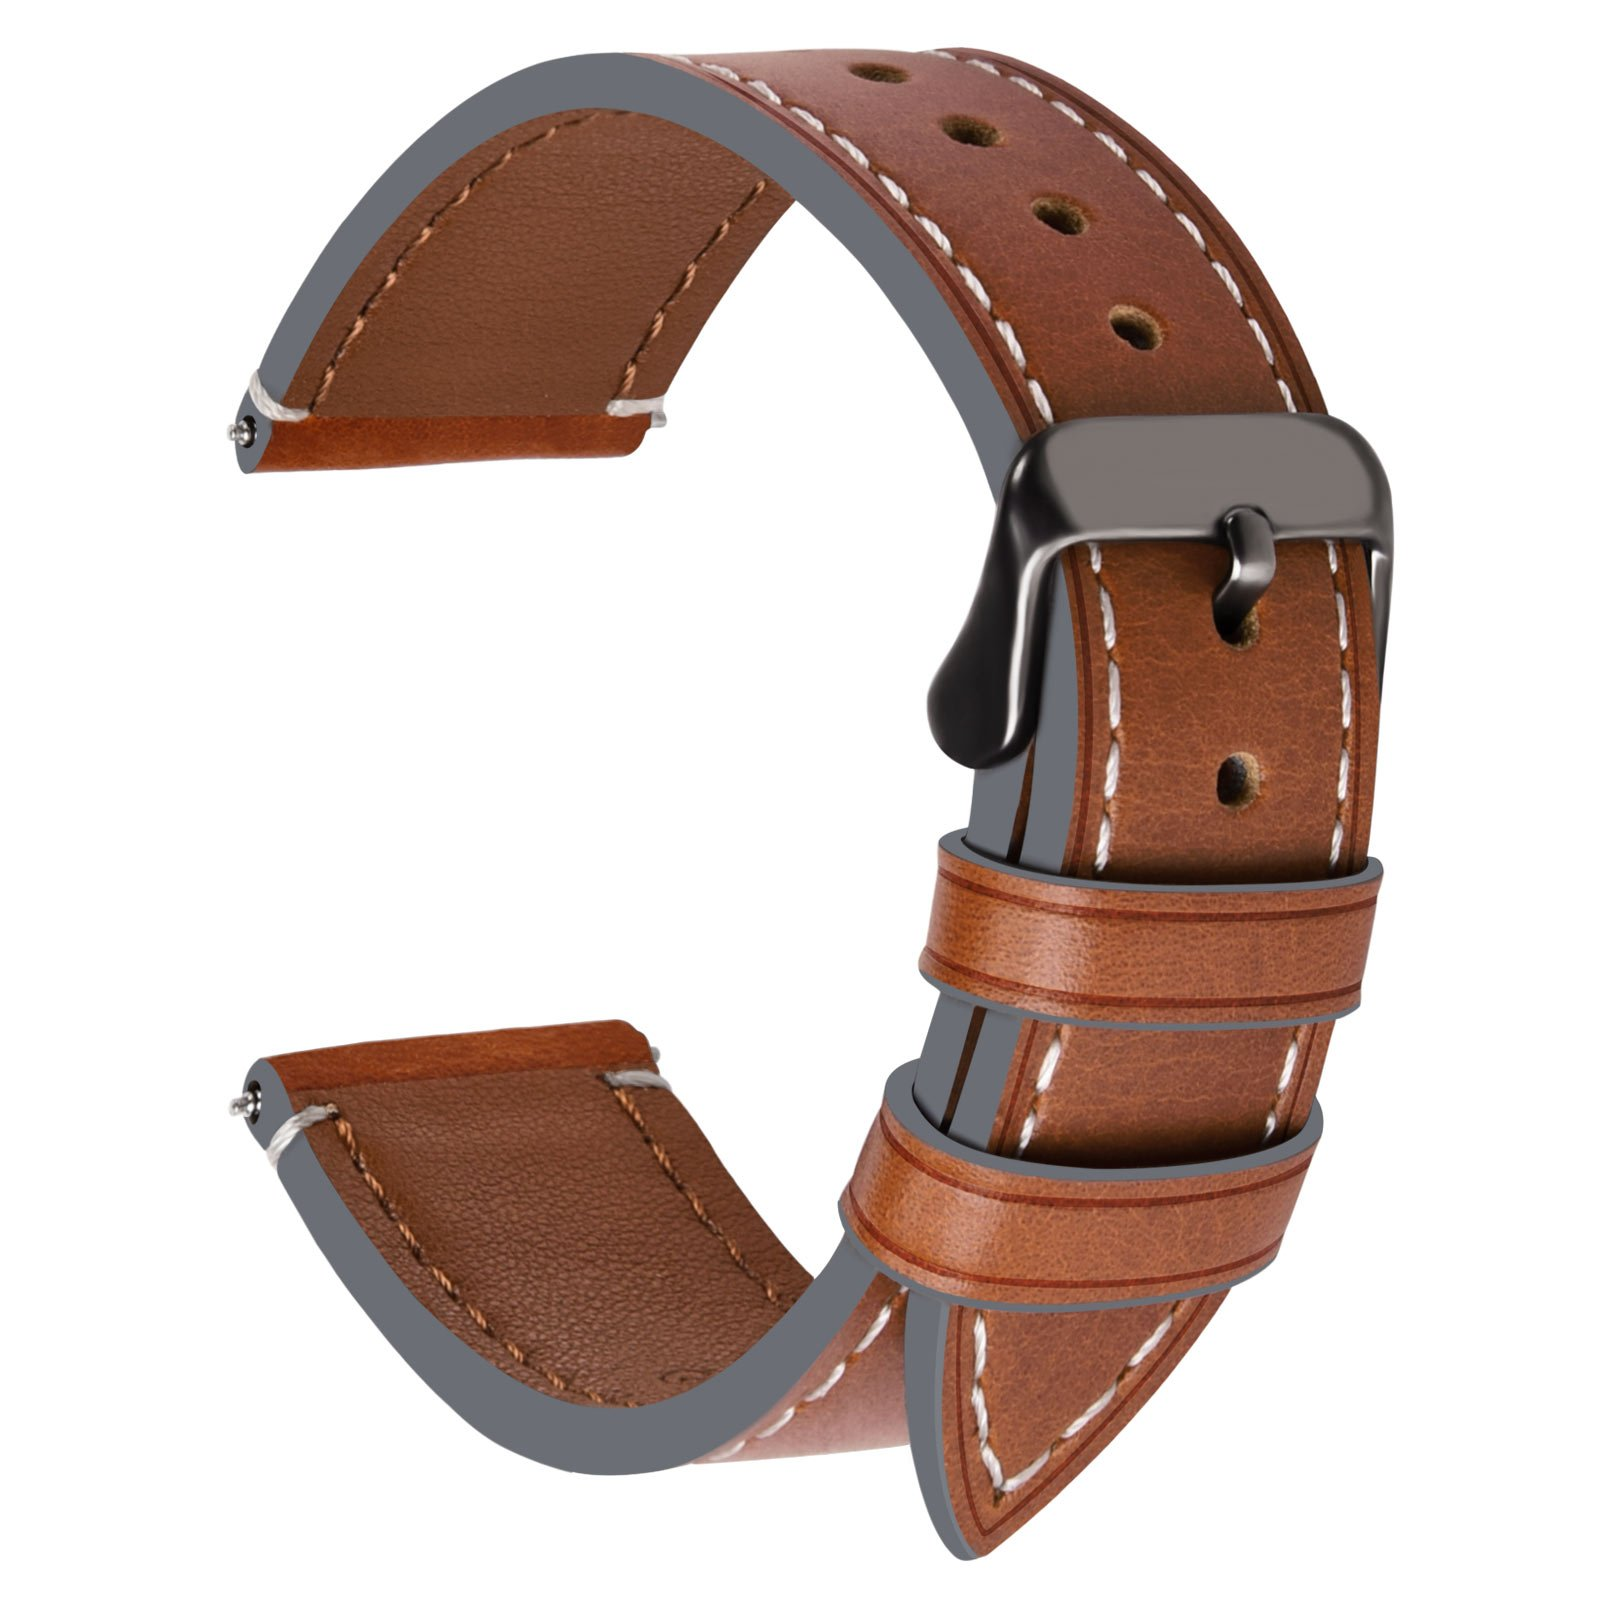 22mm 20mm 18mm 24mm Watch Bands,Fullmosa 8 Colors Top Leather Band for Sony Smartwatch Band/Strap, 24mm Dark Brown + Smoky Grey Buckle